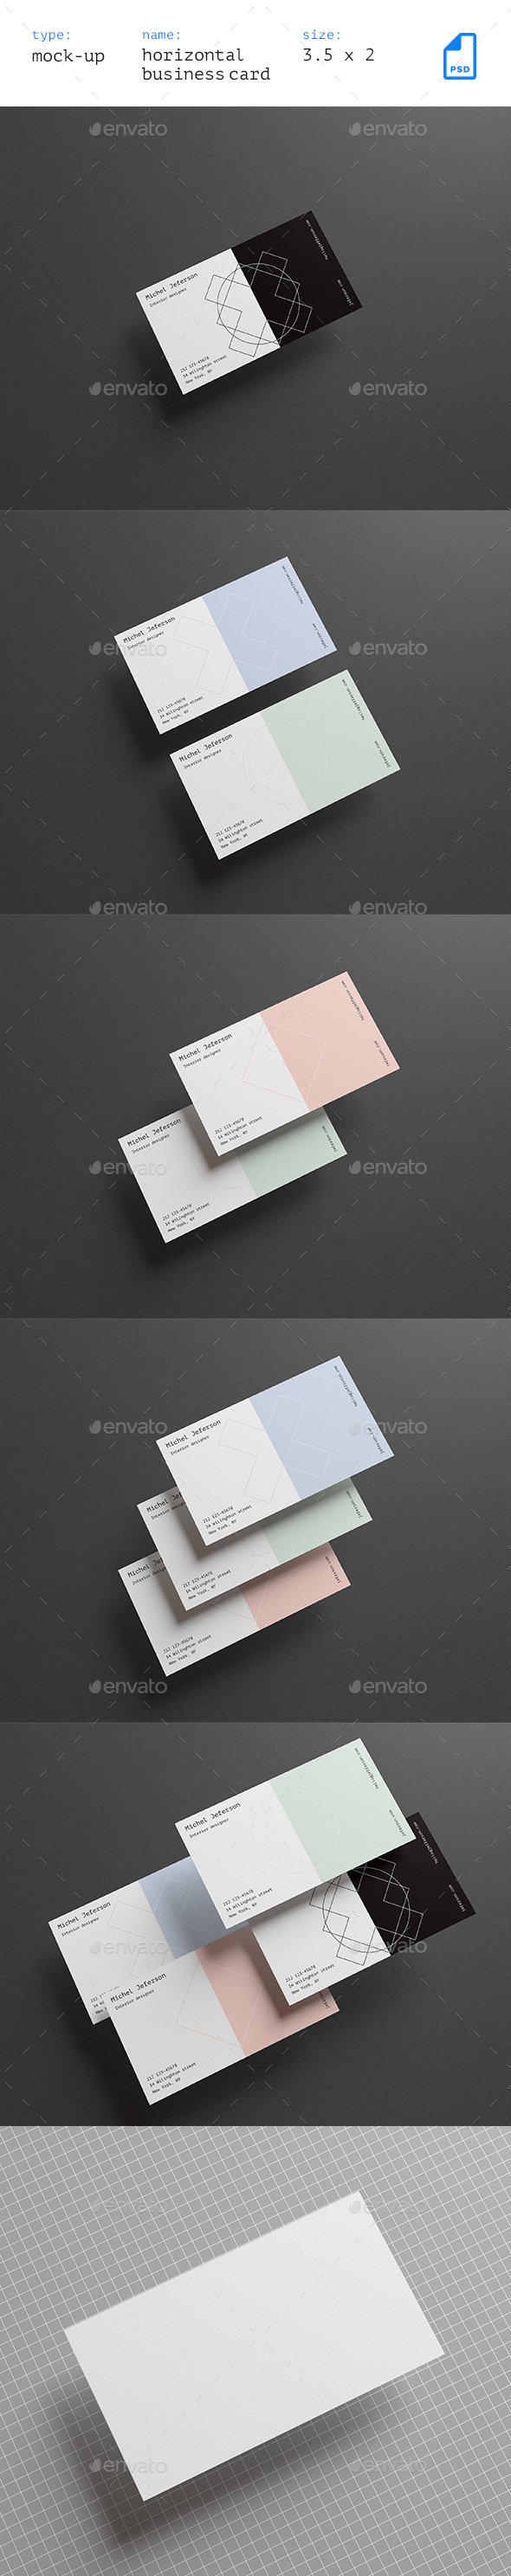 Horizontal Business Cards Mock-up Vol. 2 - Business Cards Print